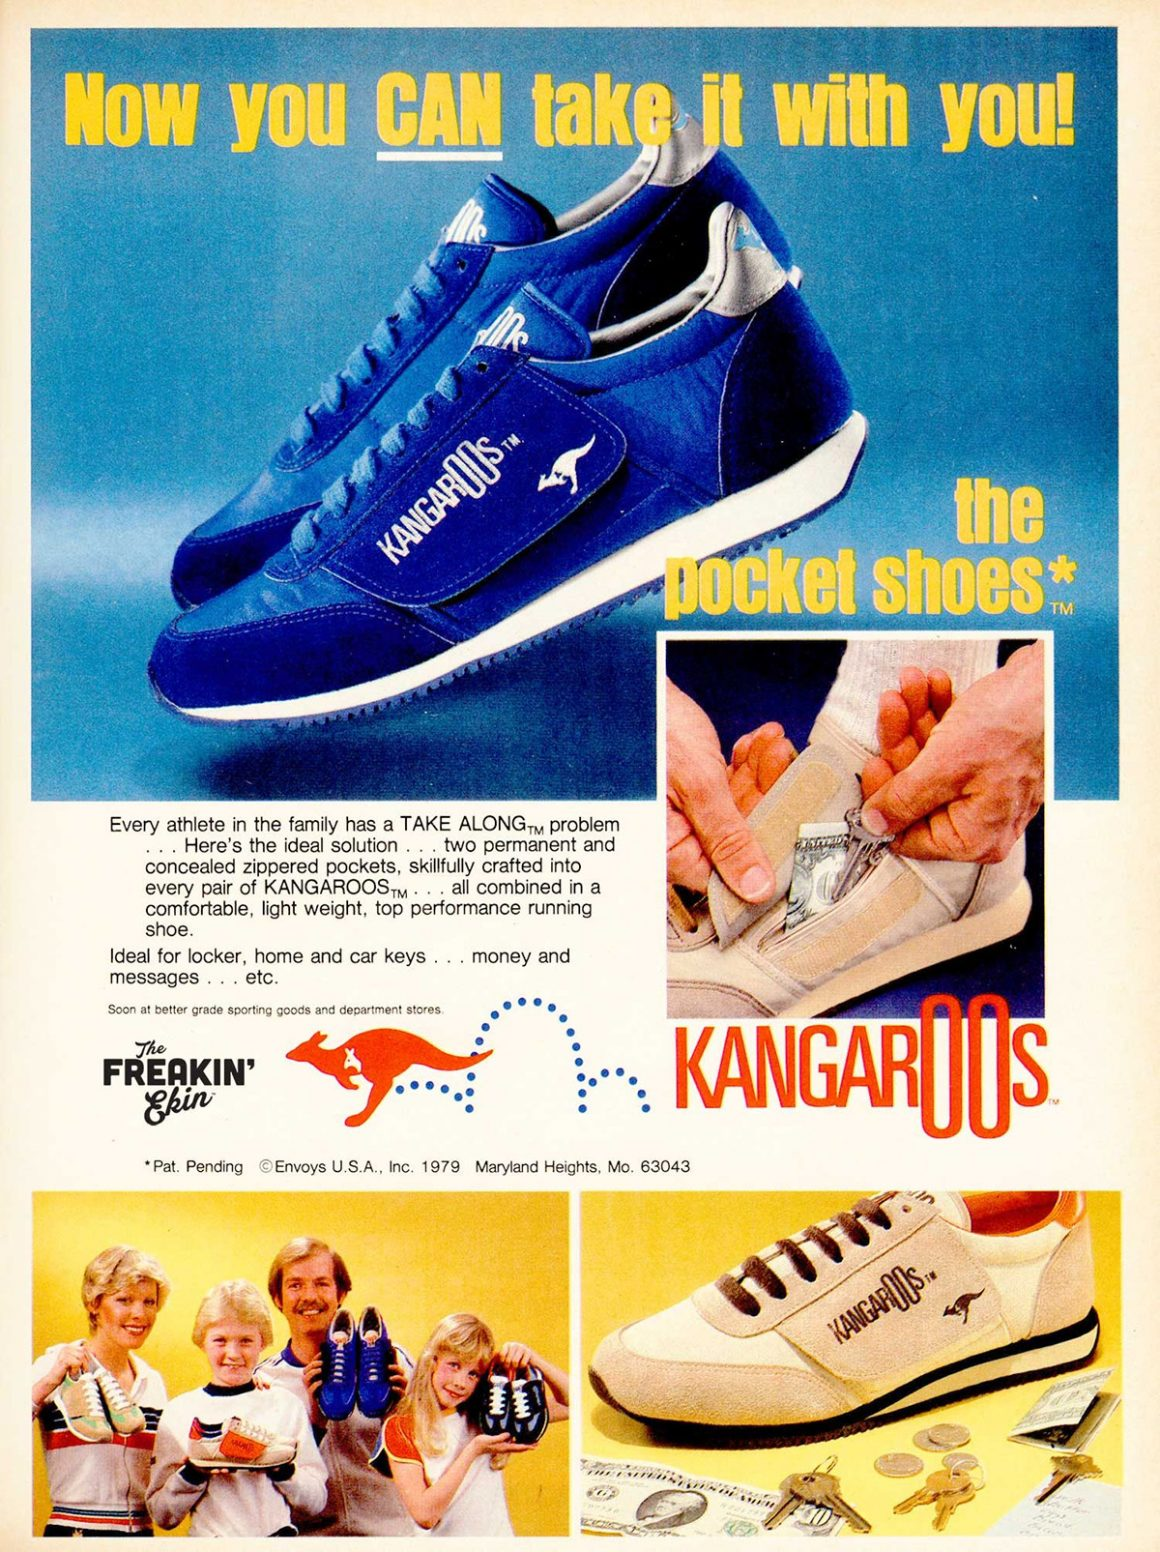 KangaROOS - Pocket shoes